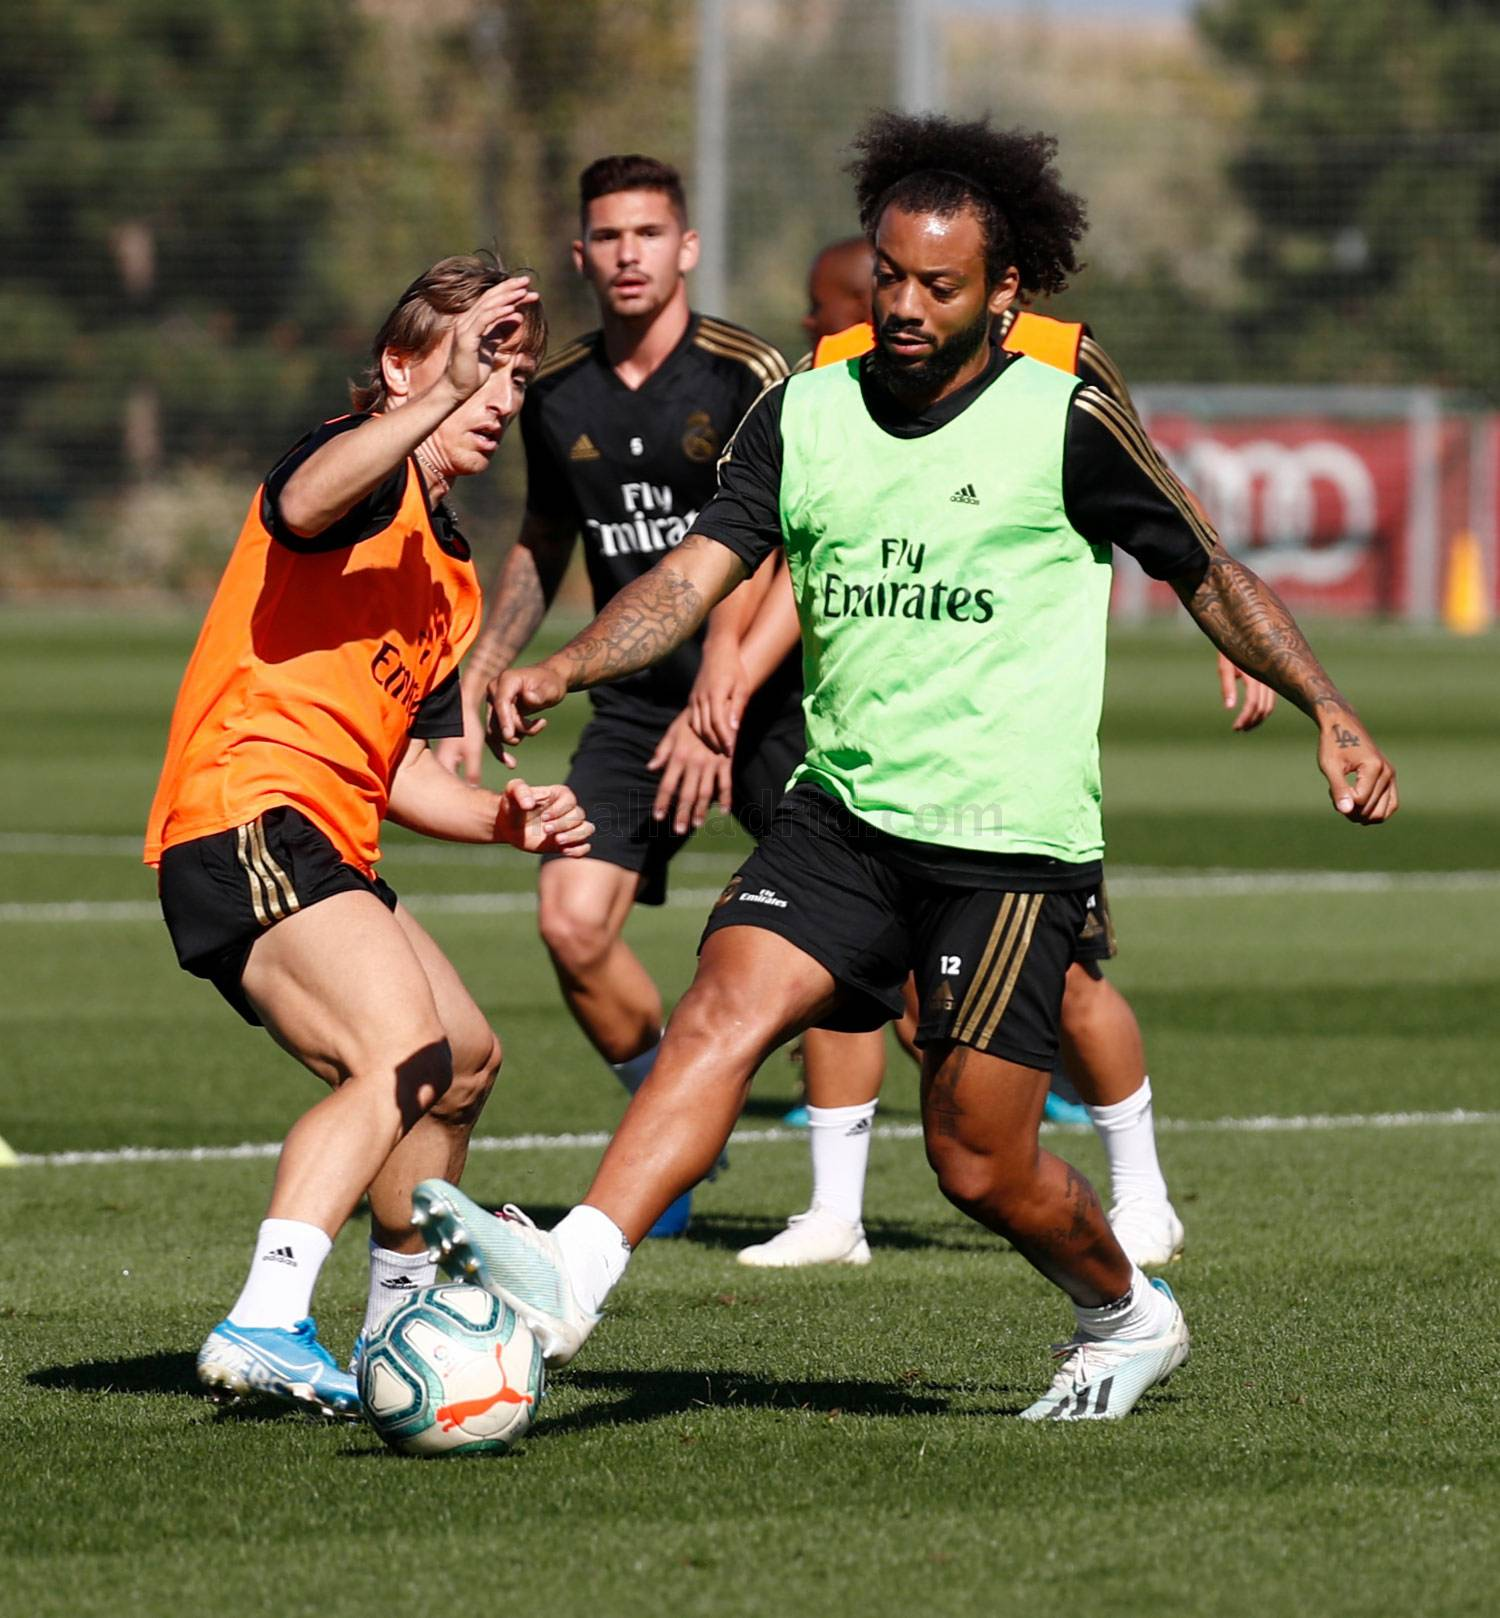 Real Madrid - Entrenamiento del Real Madrid  - 26-09-2019